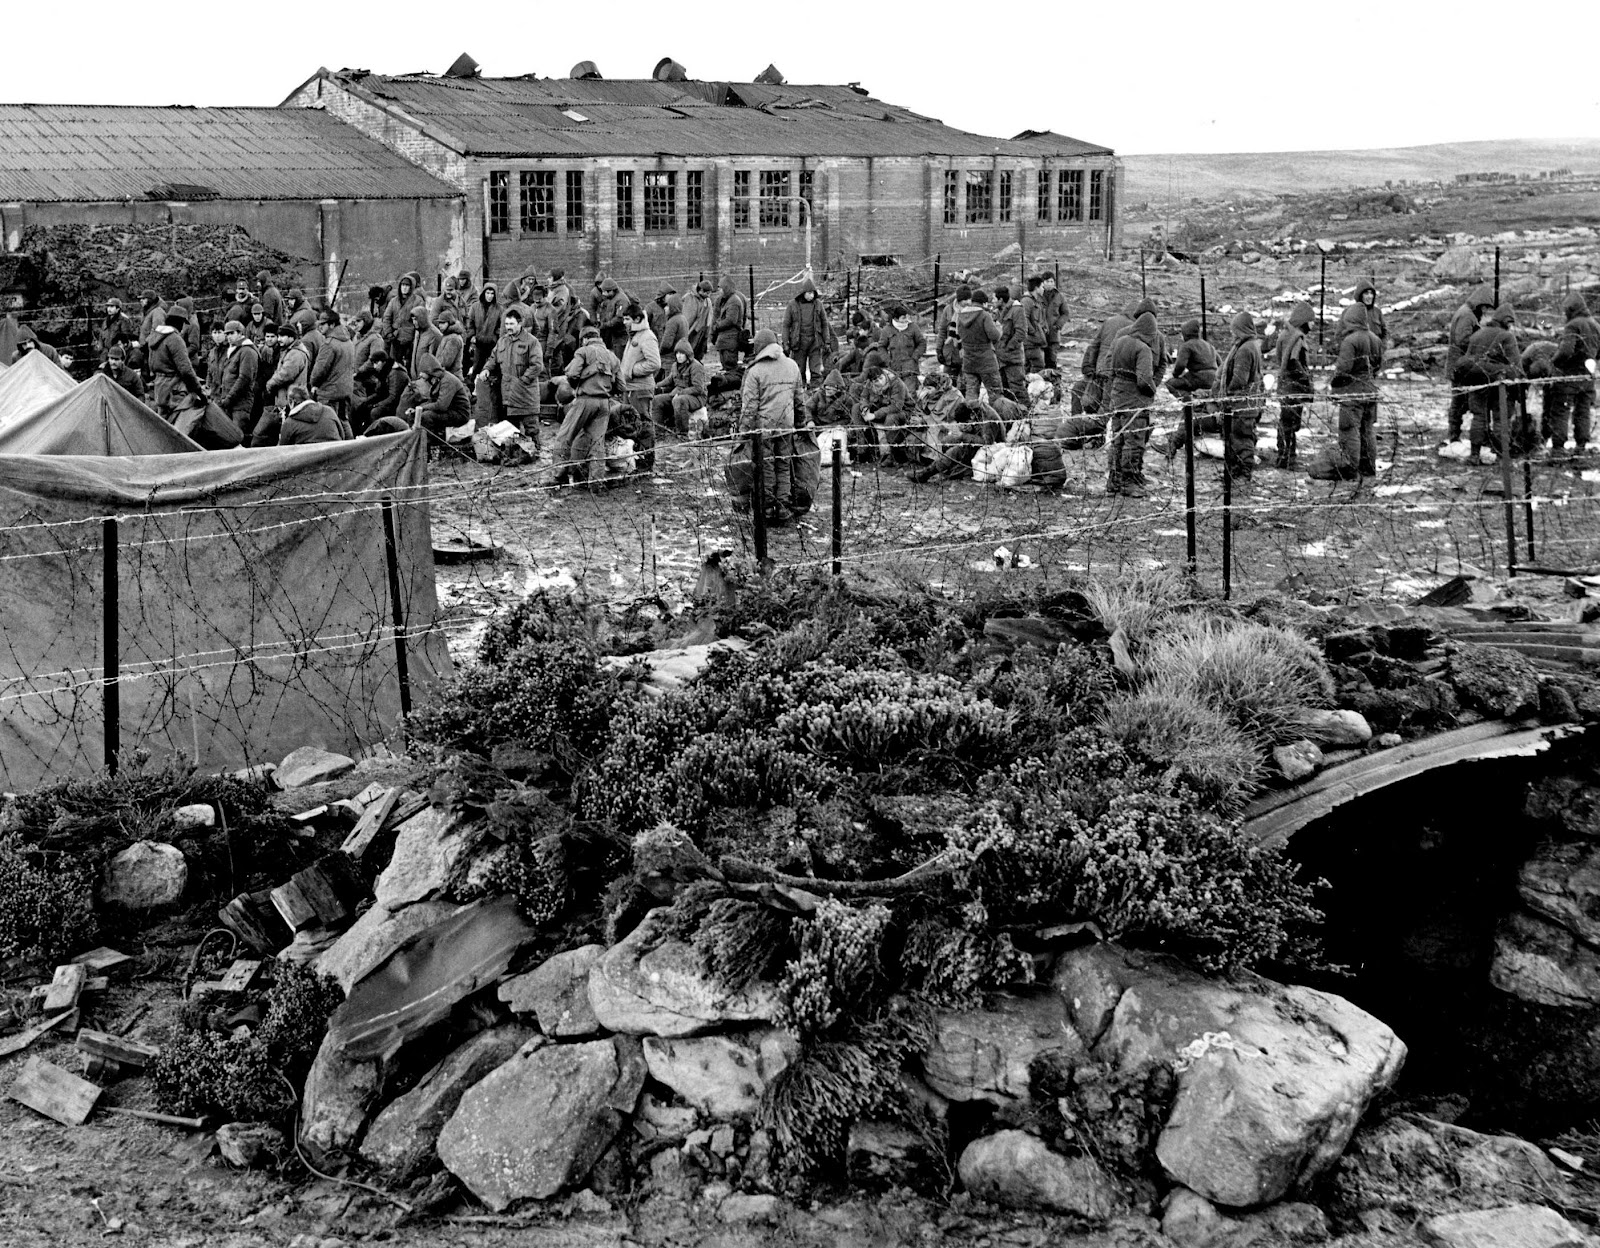 a history of war in falkland islands The falklands war was by far the largest and most extended series of naval  on  the falklands (which it calls the malvinas islands) was based on sheer  and had  been part of public school history curricula for generations.